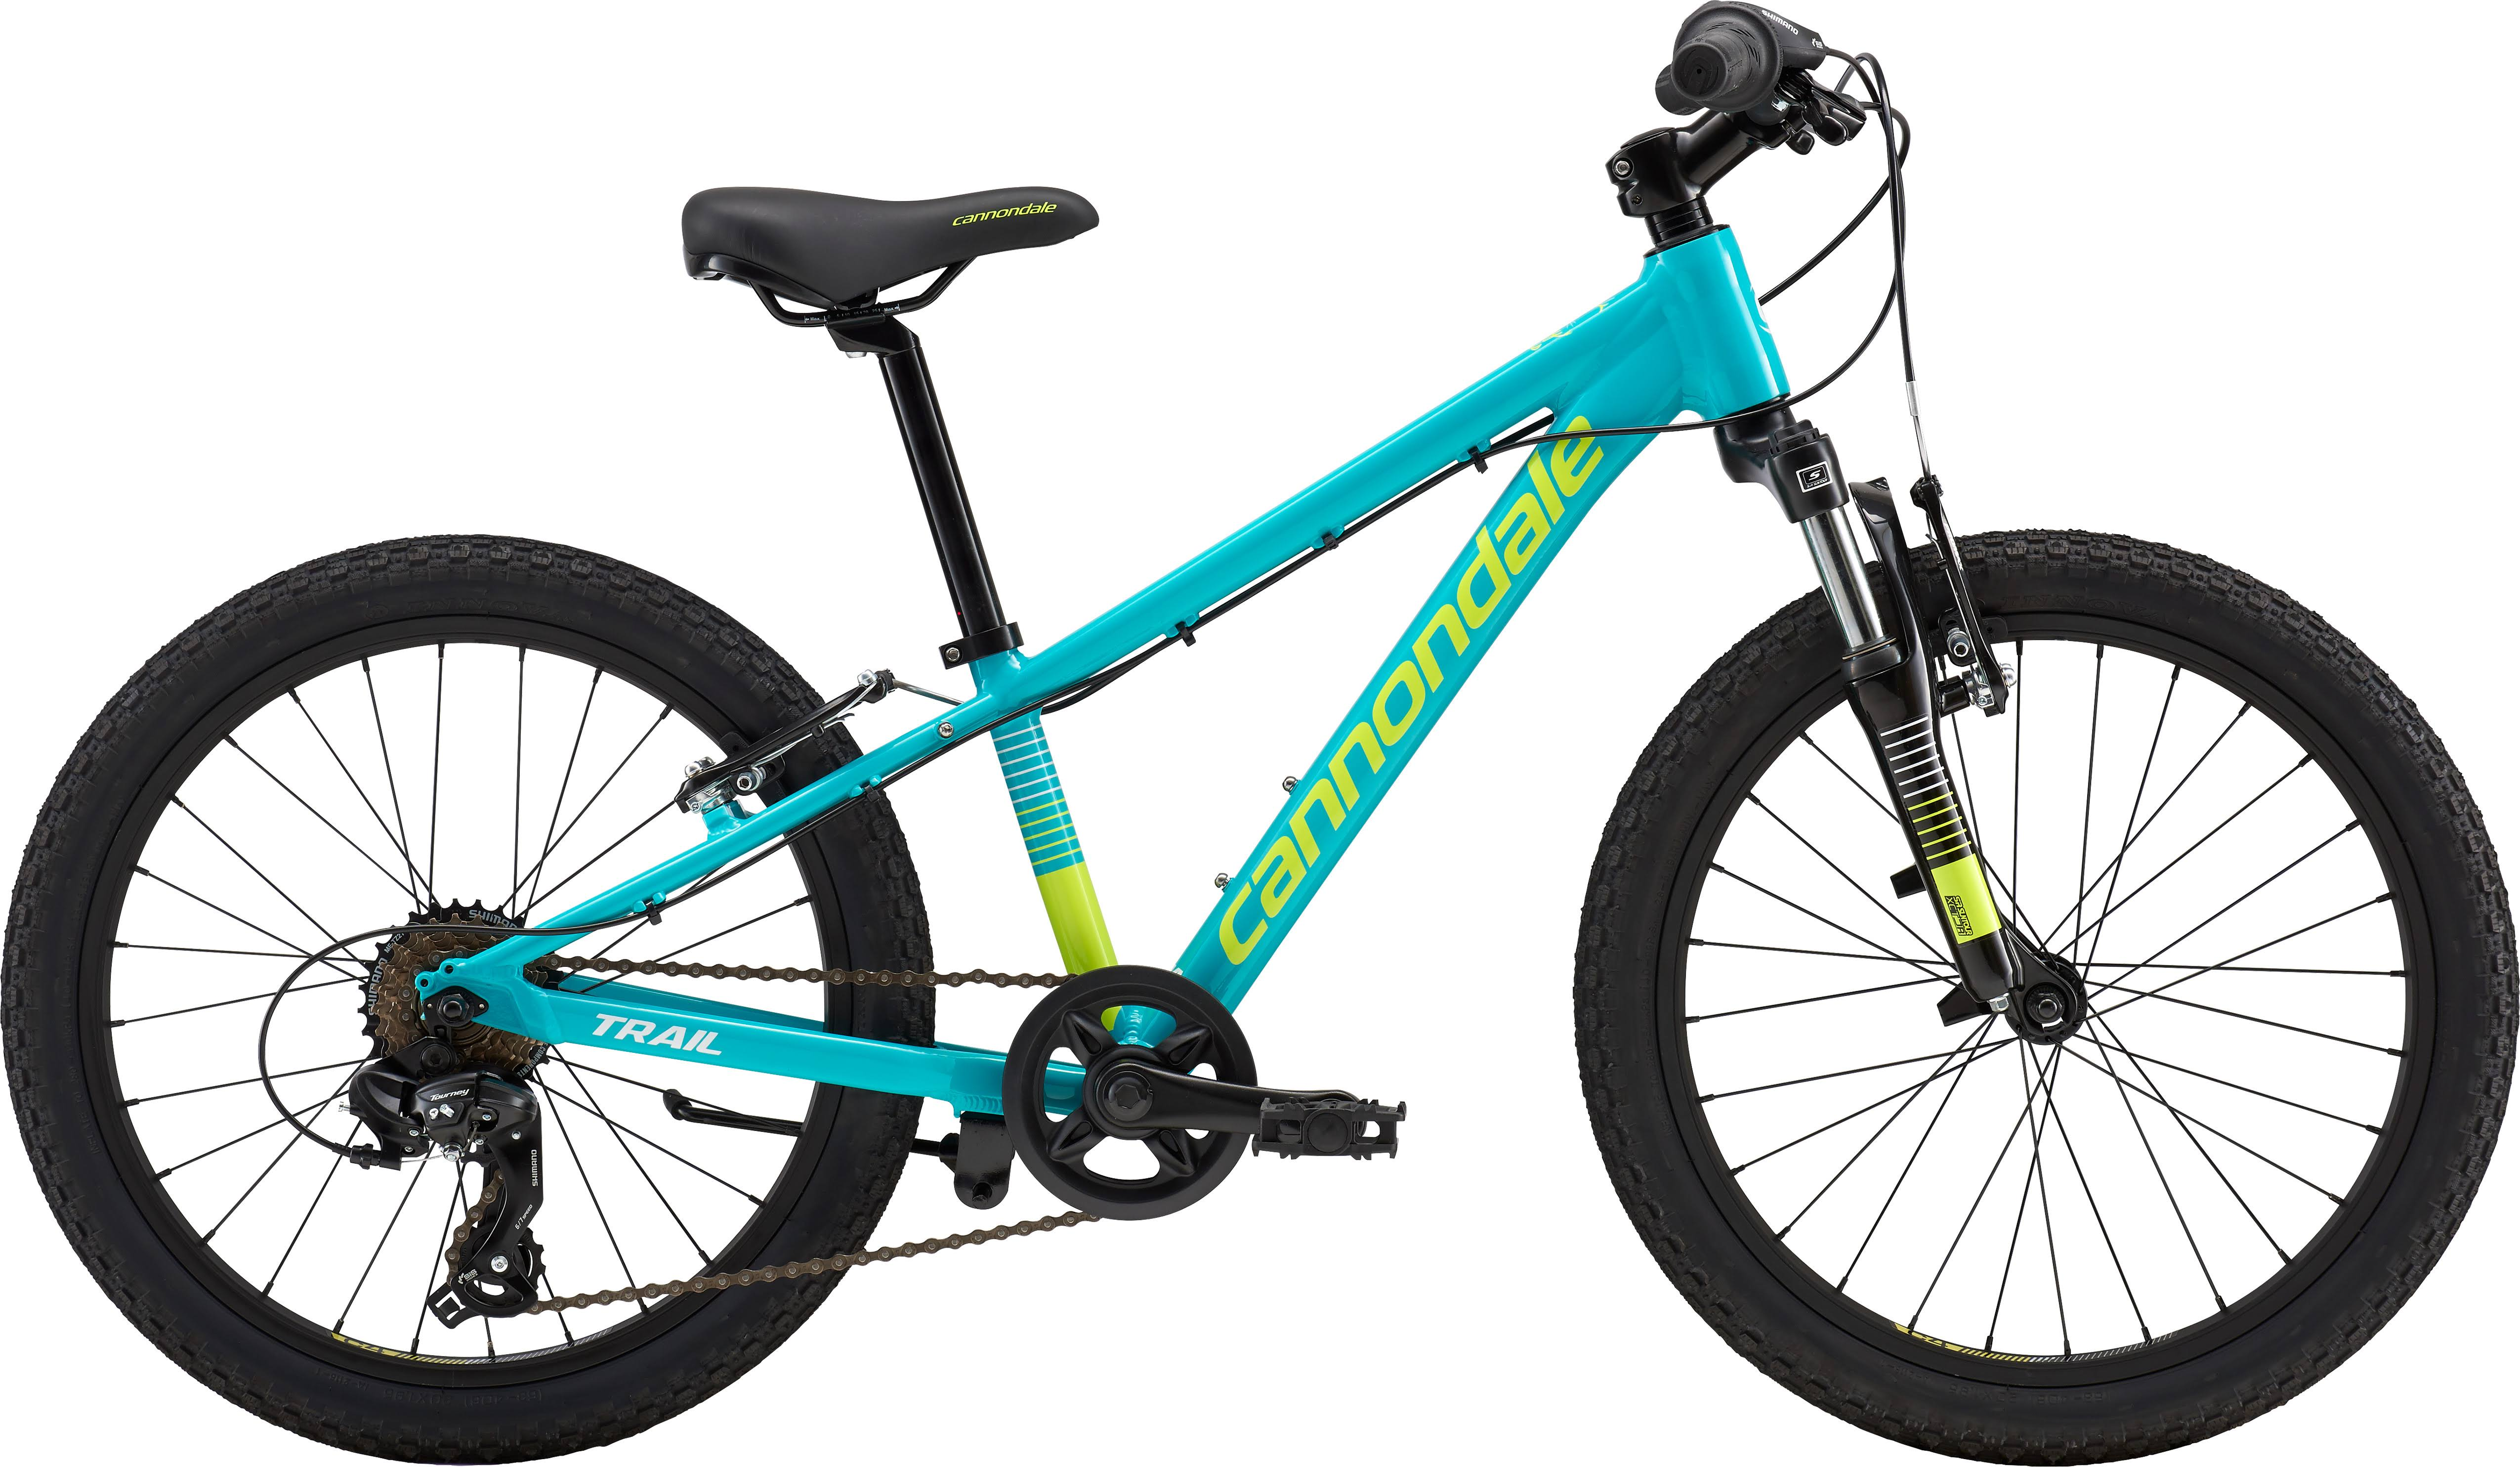 Cannondale Trail Girls 2018 Bike - Turquoise